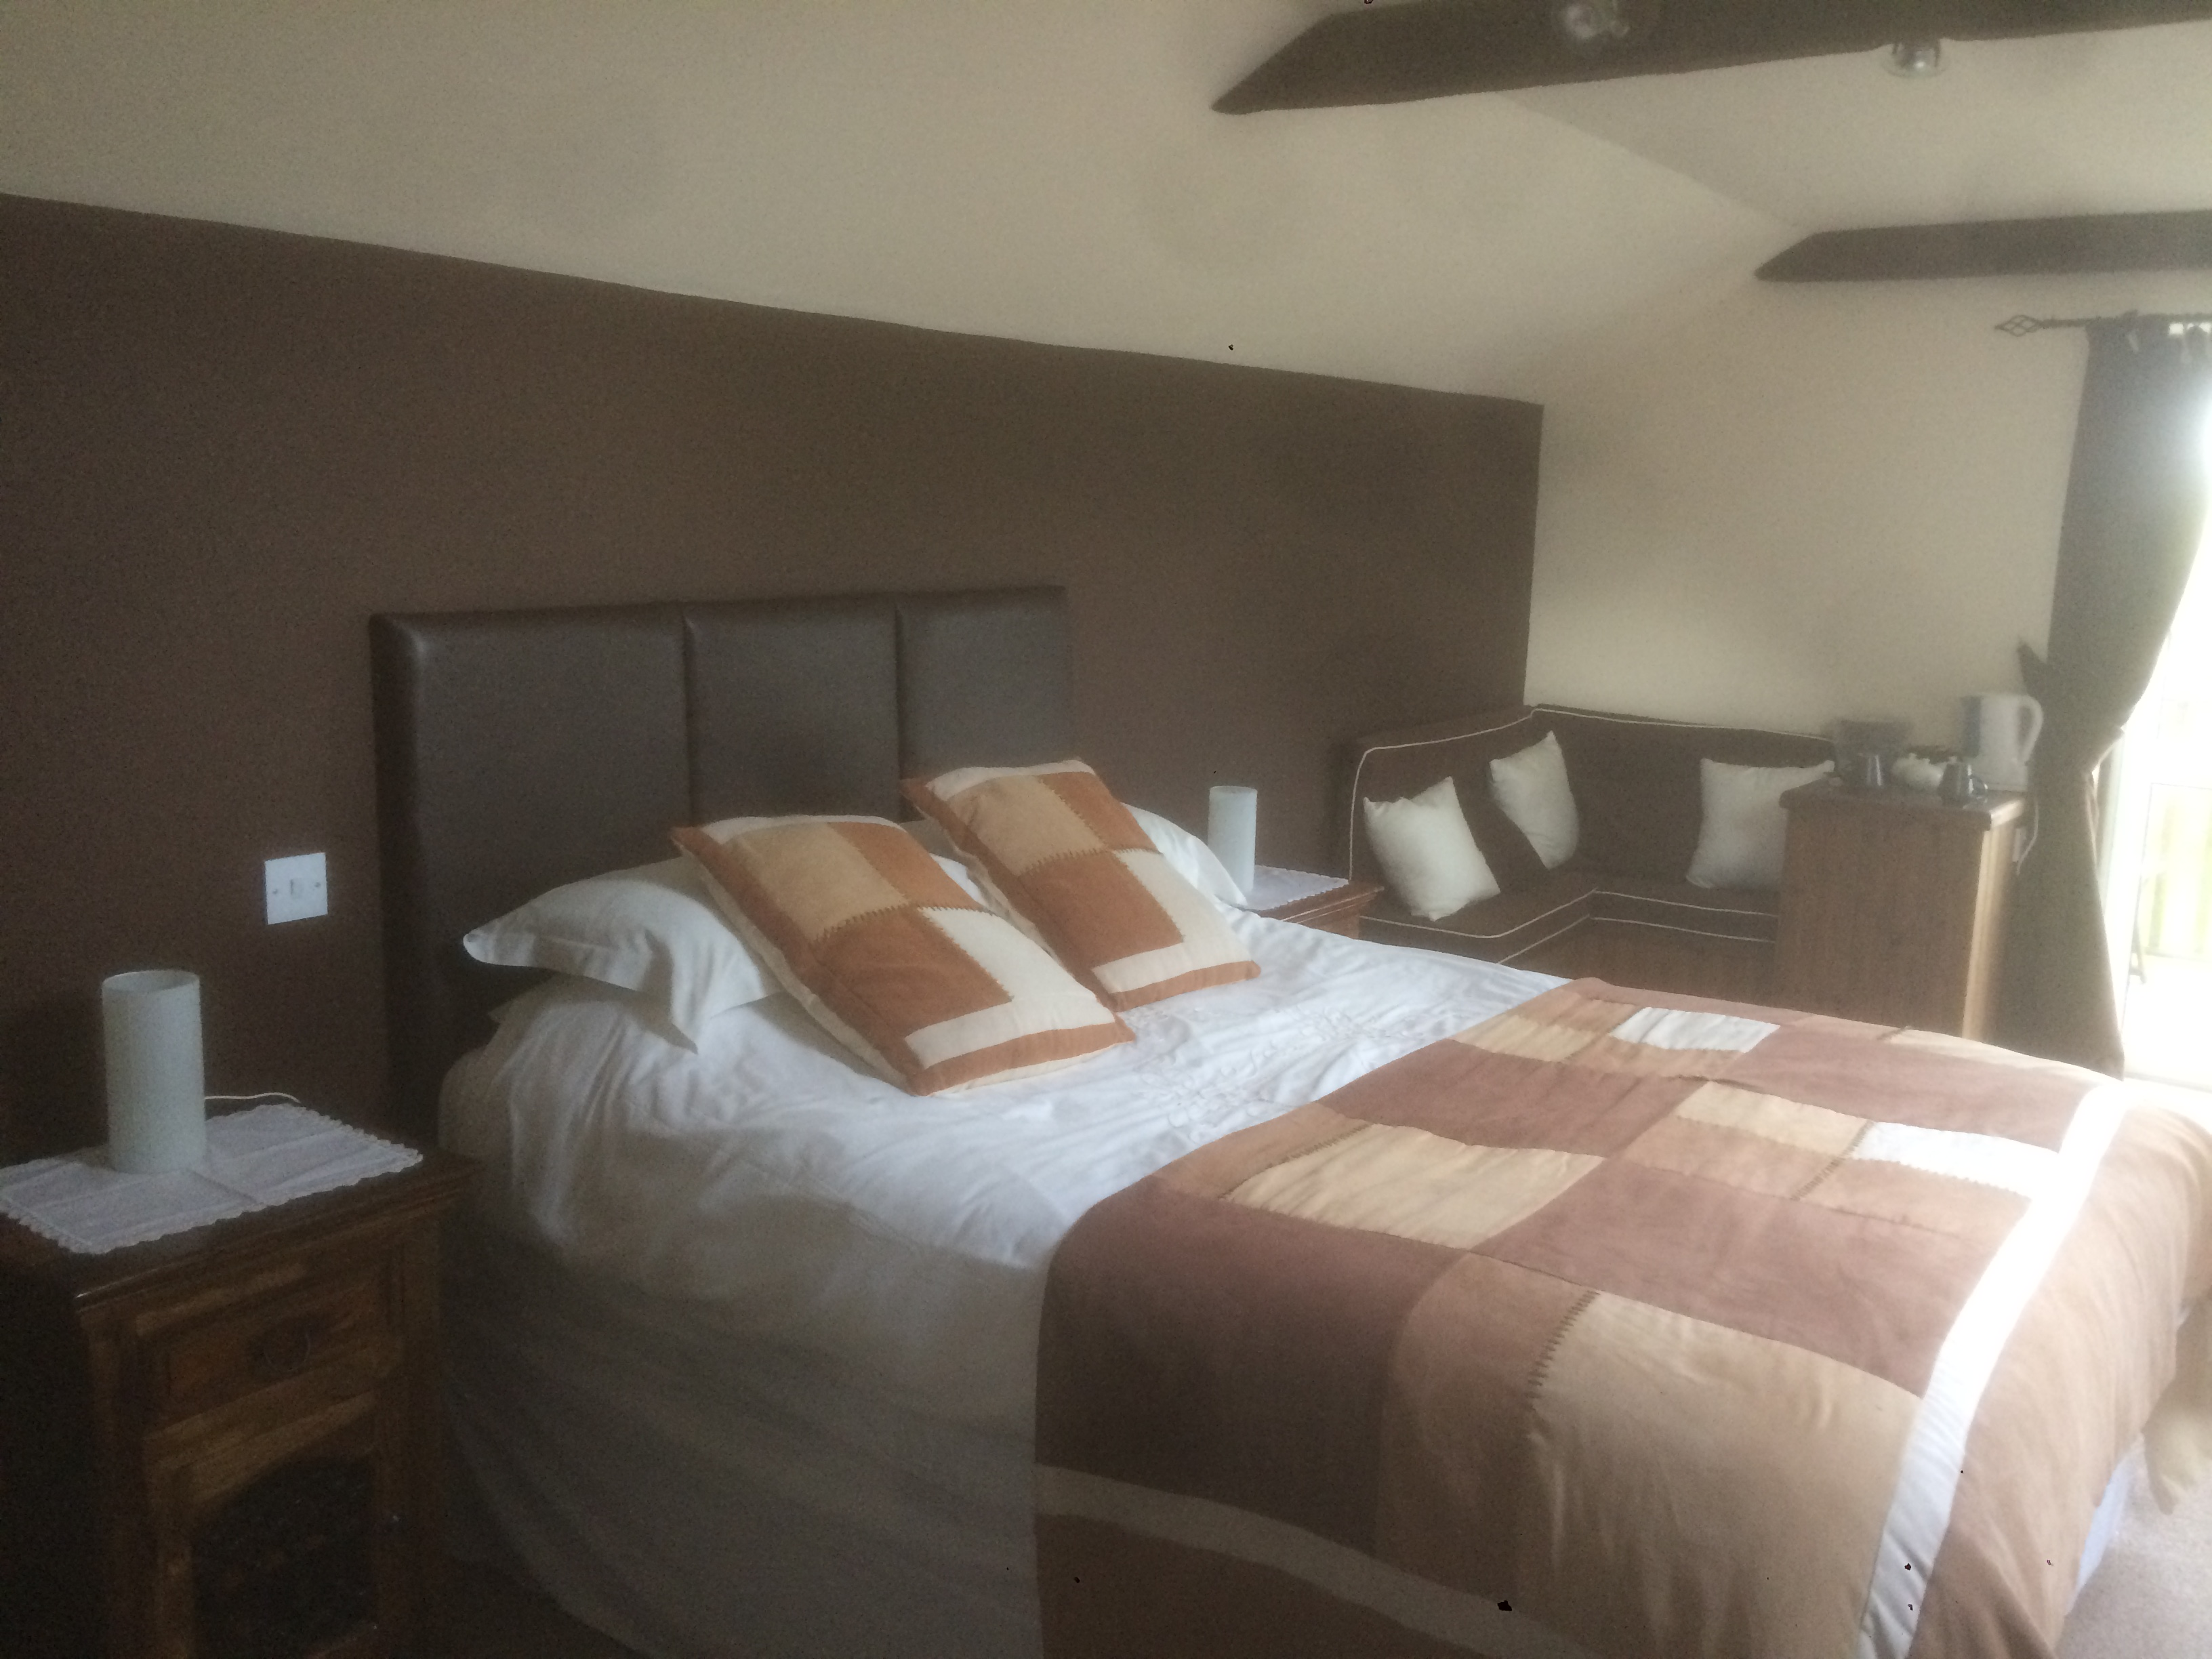 The bedroom at The Granary, combining the atmosphere of a farmhouse B&B with the privacy and luxury of a separate suite, B&B in Hartland, North Devon